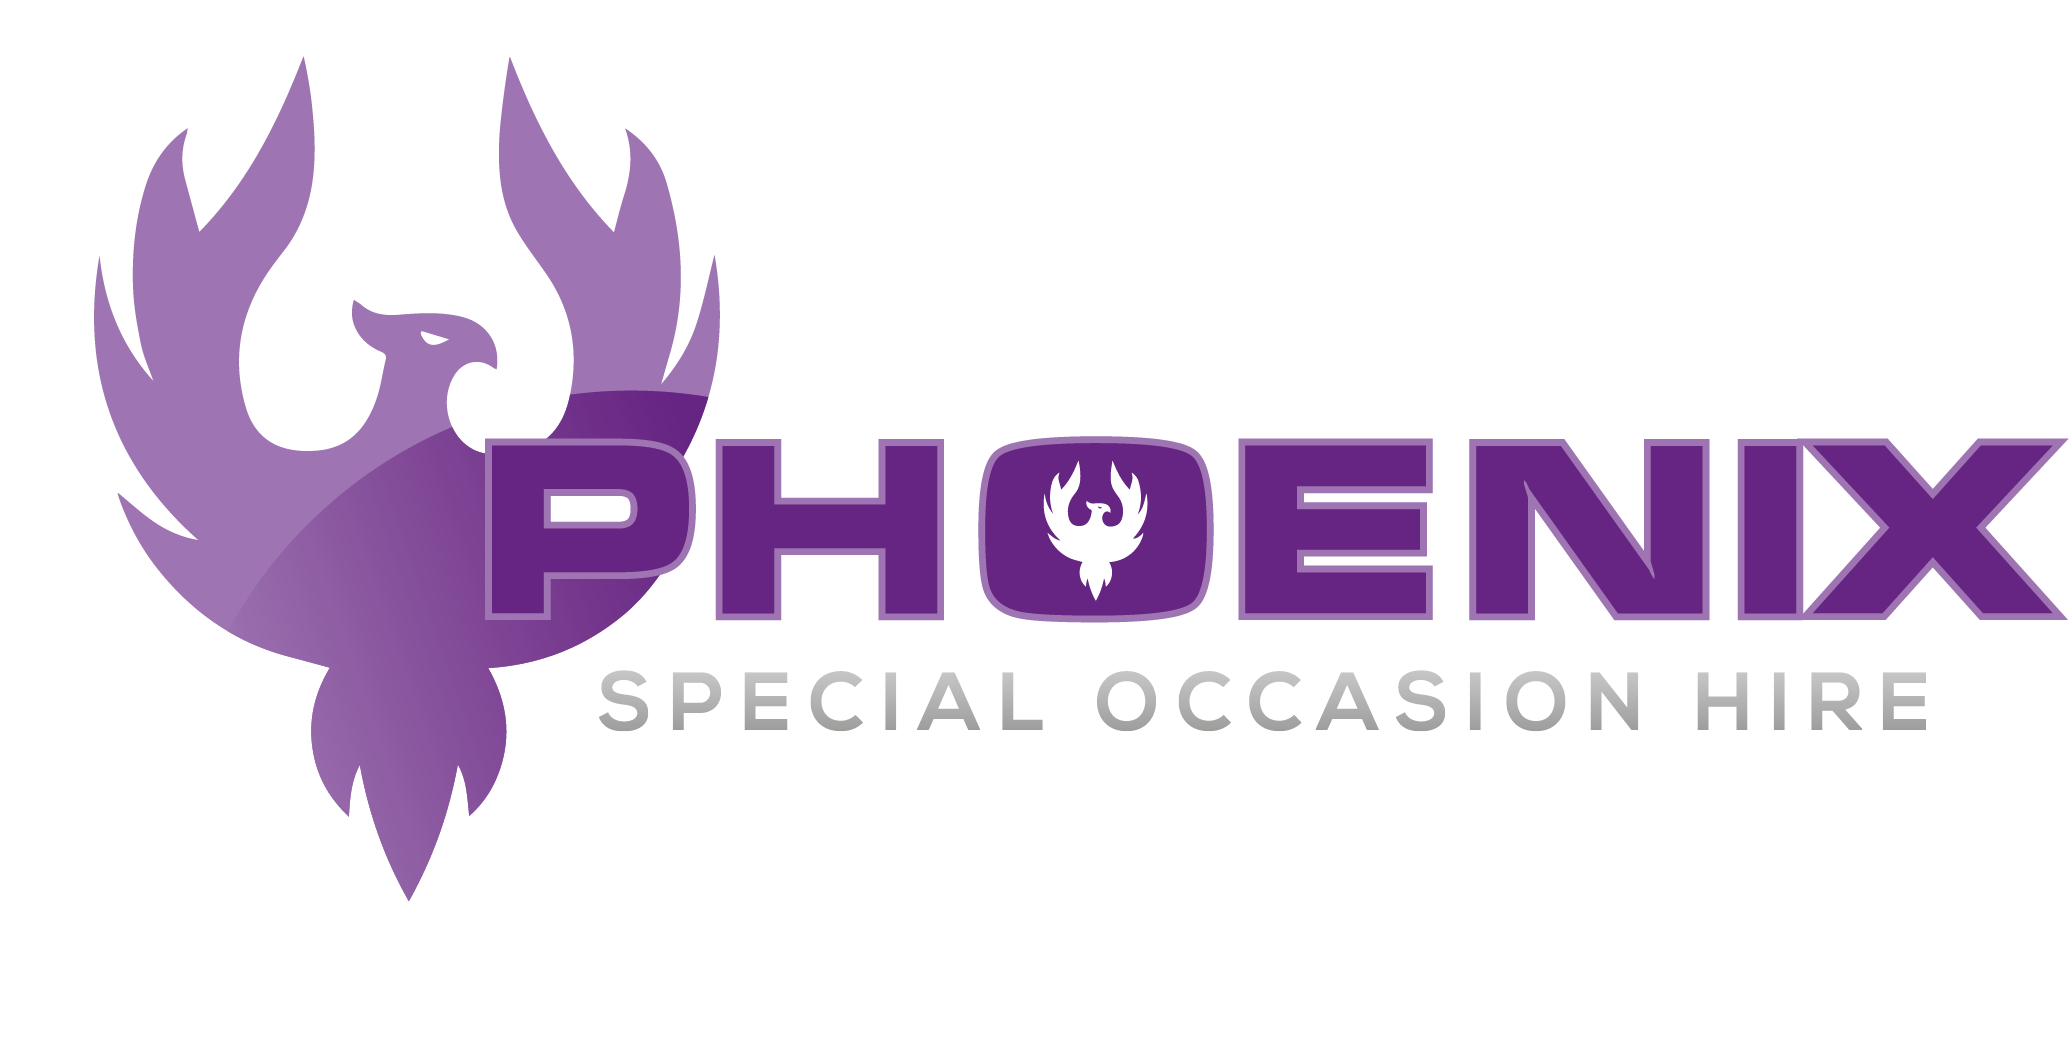 Phoenix Special Occasion Hire